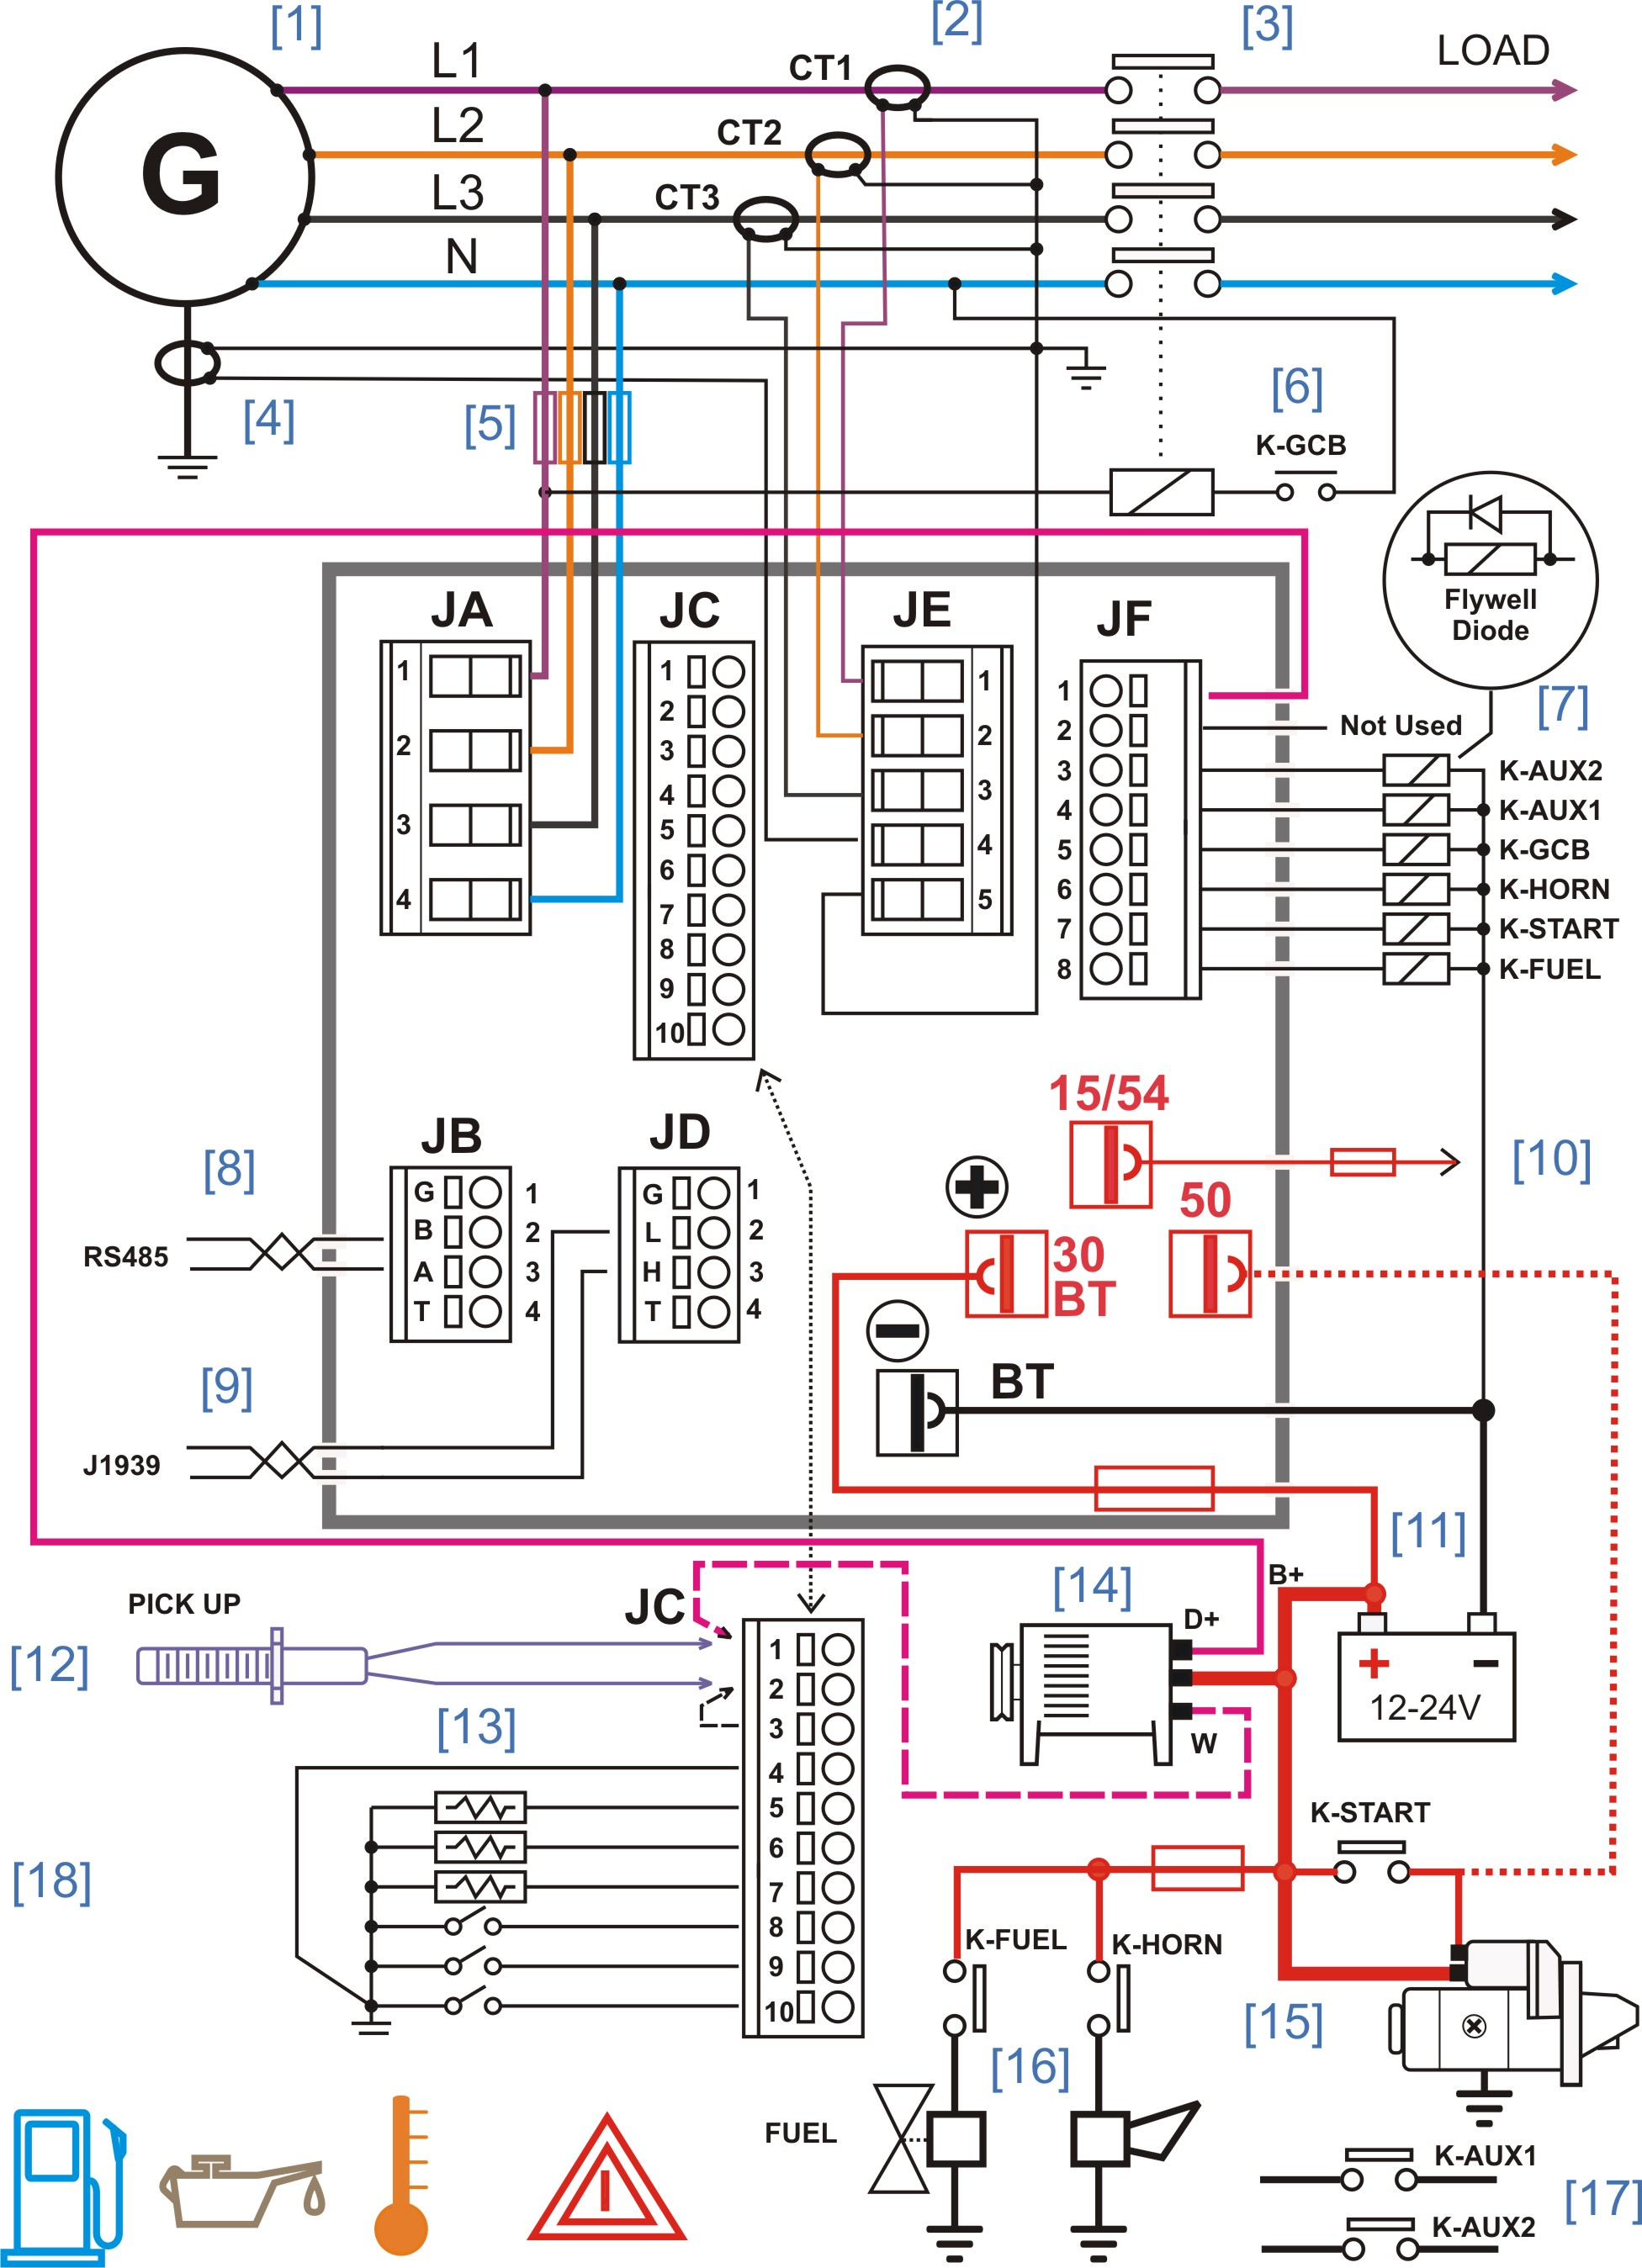 Diesel Generator Control Panel Wiring Diagram diesel generator control panel wiring diagram genset controller  at nearapp.co